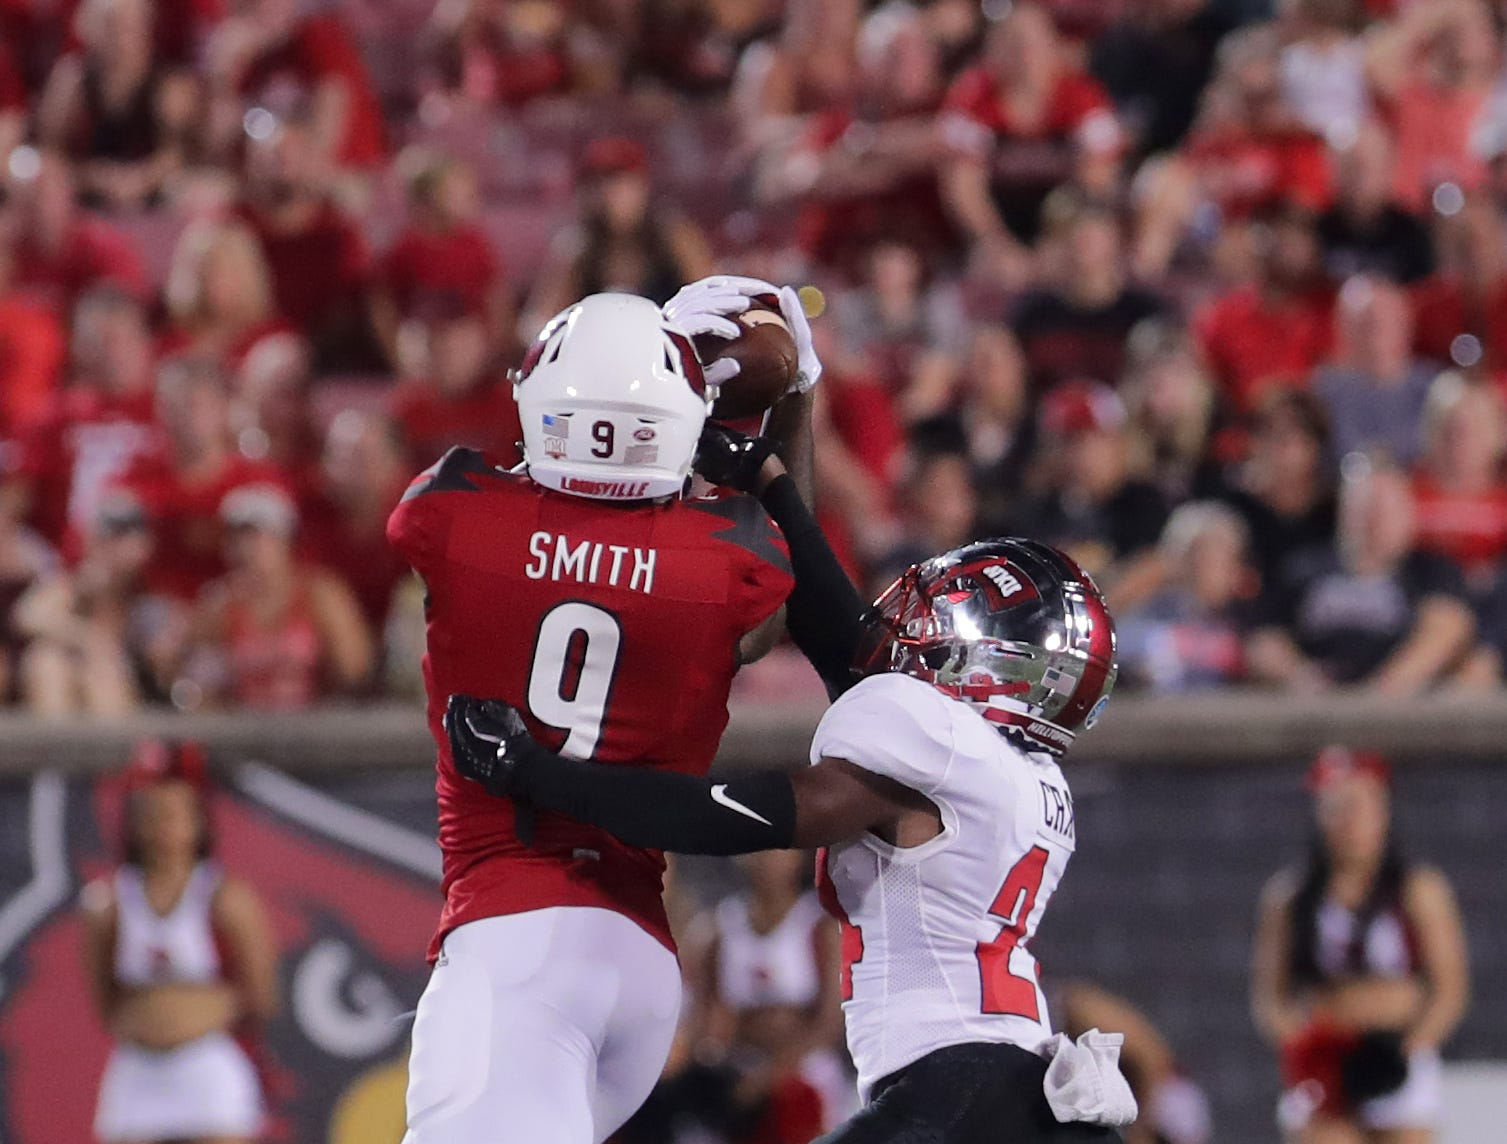 Louisville's Jaylen Smith grabs the catch for a first down.  Sept. 15, 2018